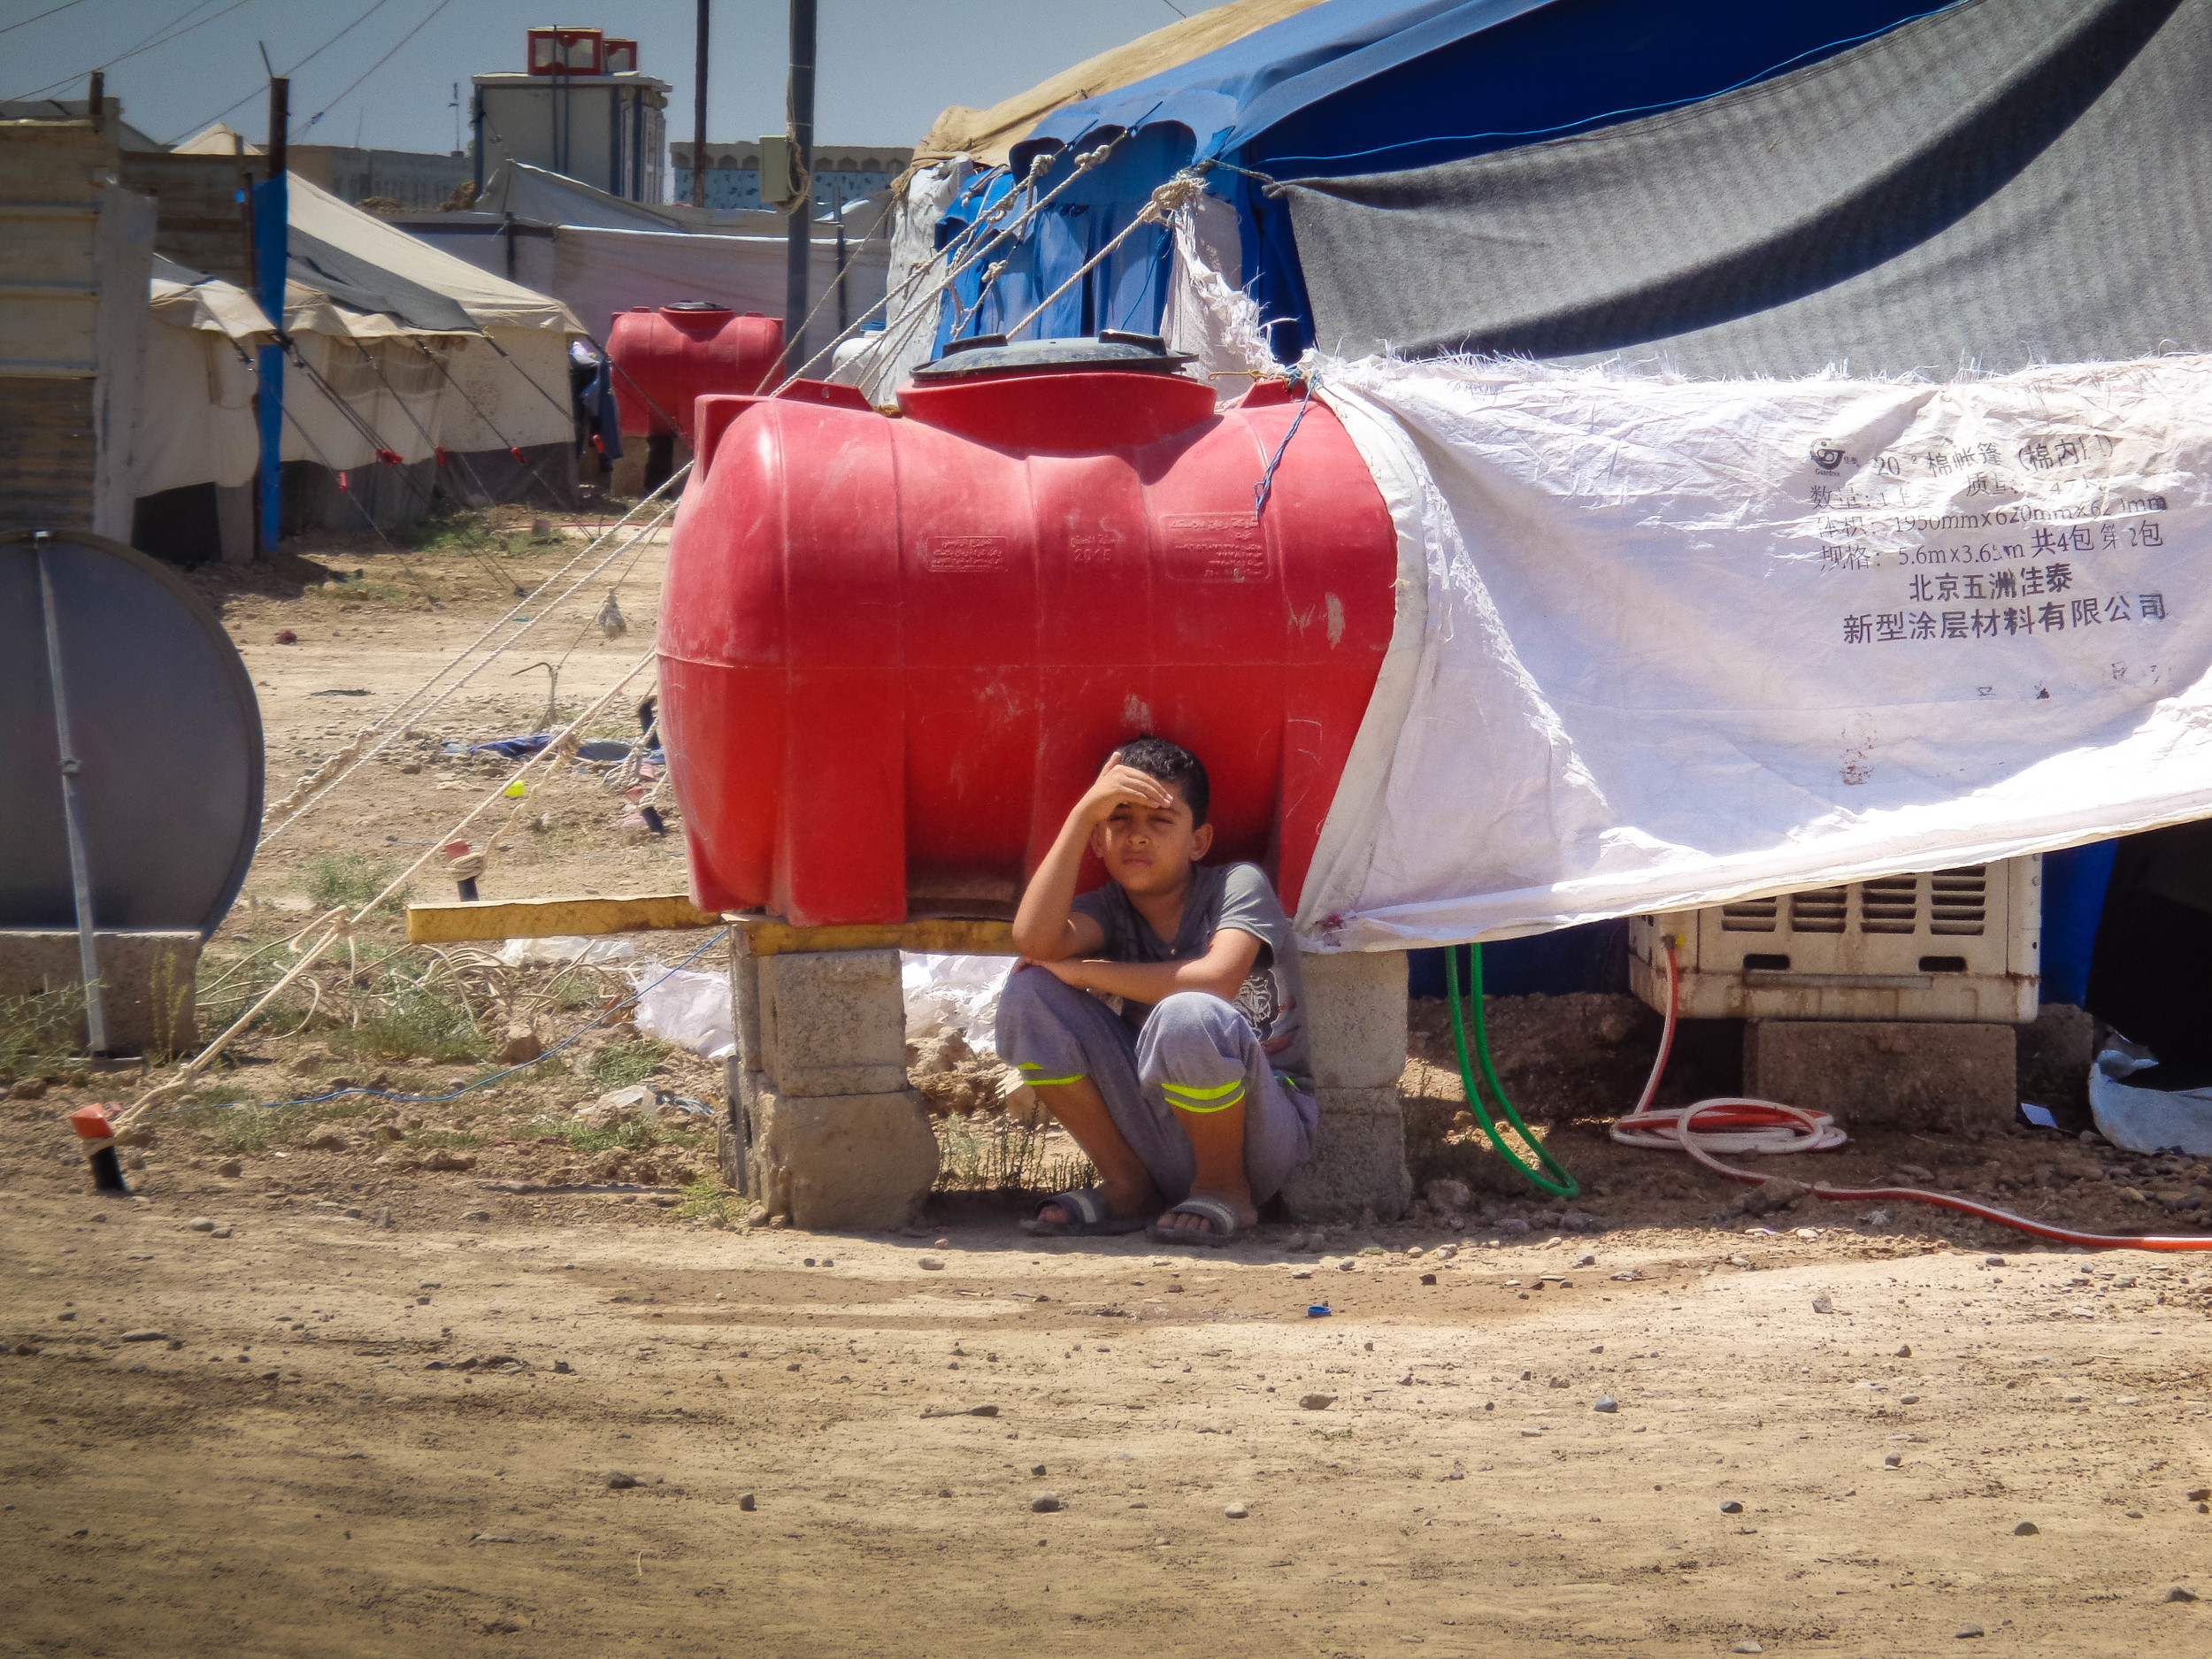 Most of the IDP camps and settlements in Baghdad and neighboring provinces don't have enough water storage facilities to meet the needs of the displaced.